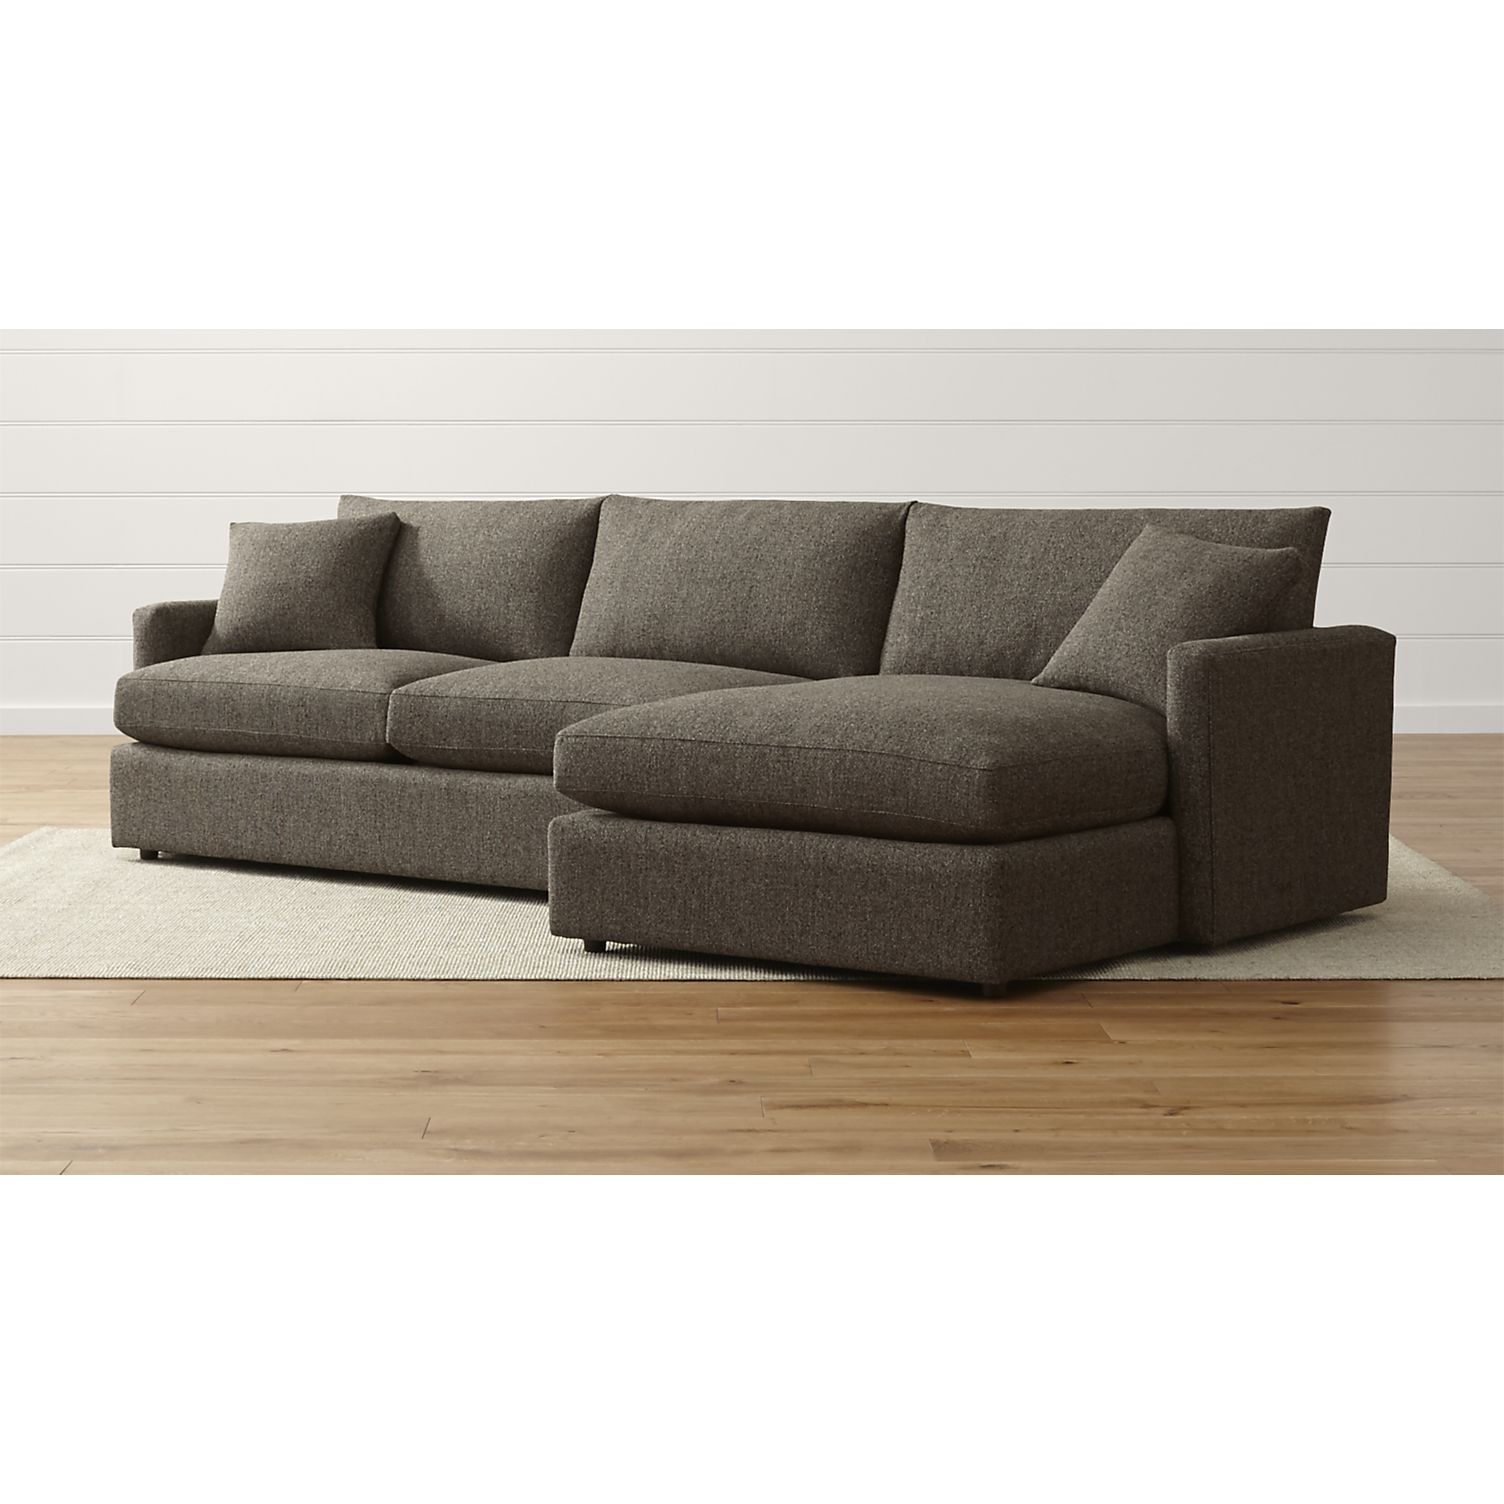 Lounge II Petite 2 Piece Sectional Sofa